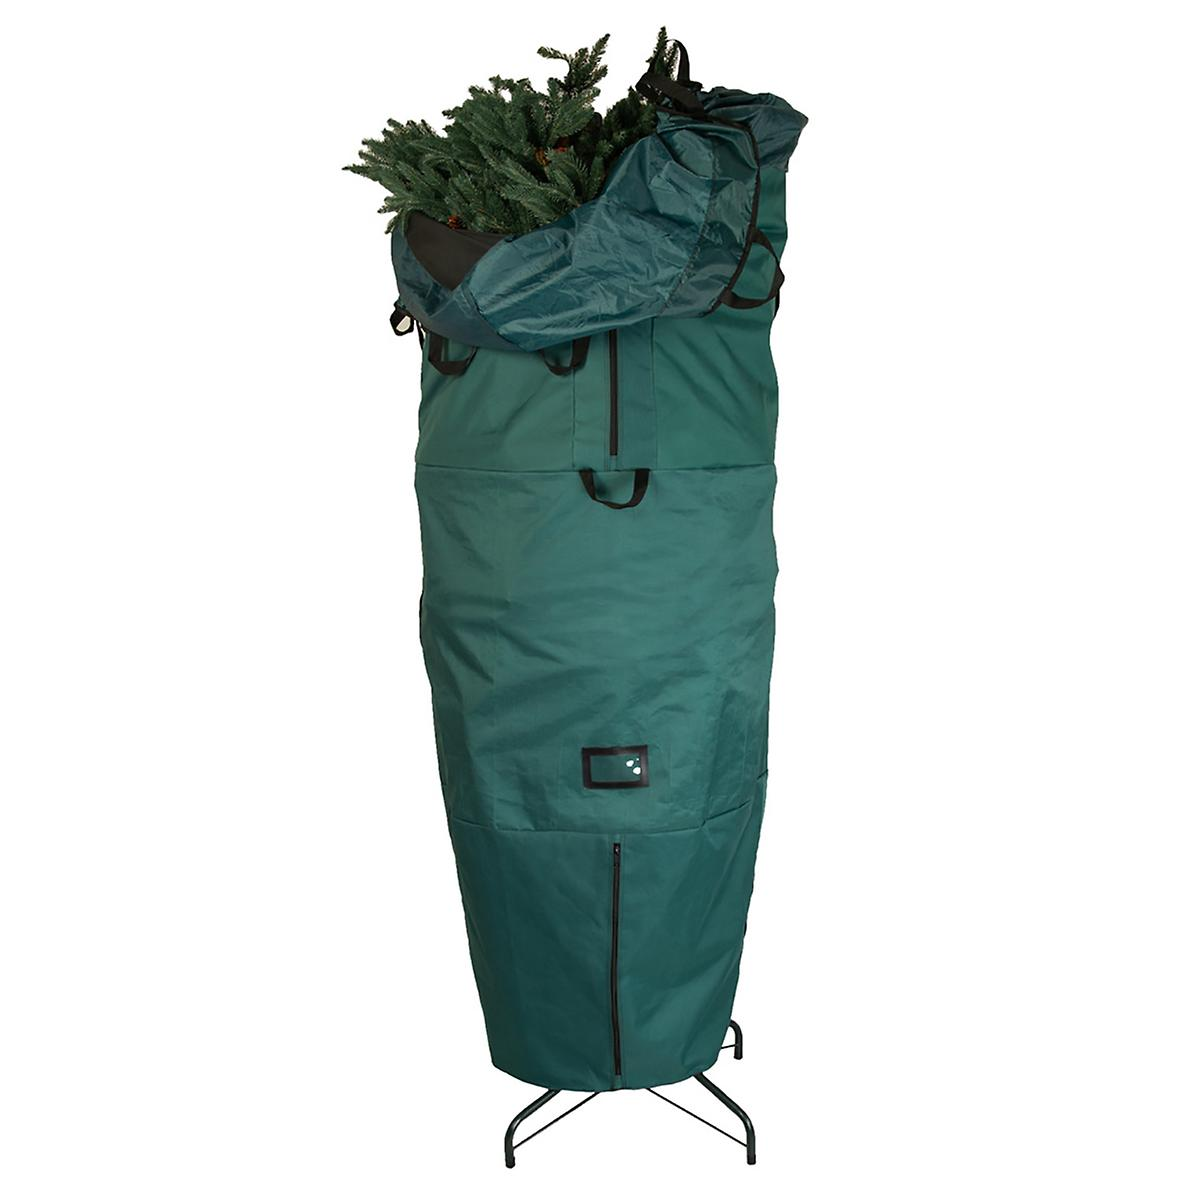 Christmas Tree Storage Bag.Upright Christmas Tree Storage Bag